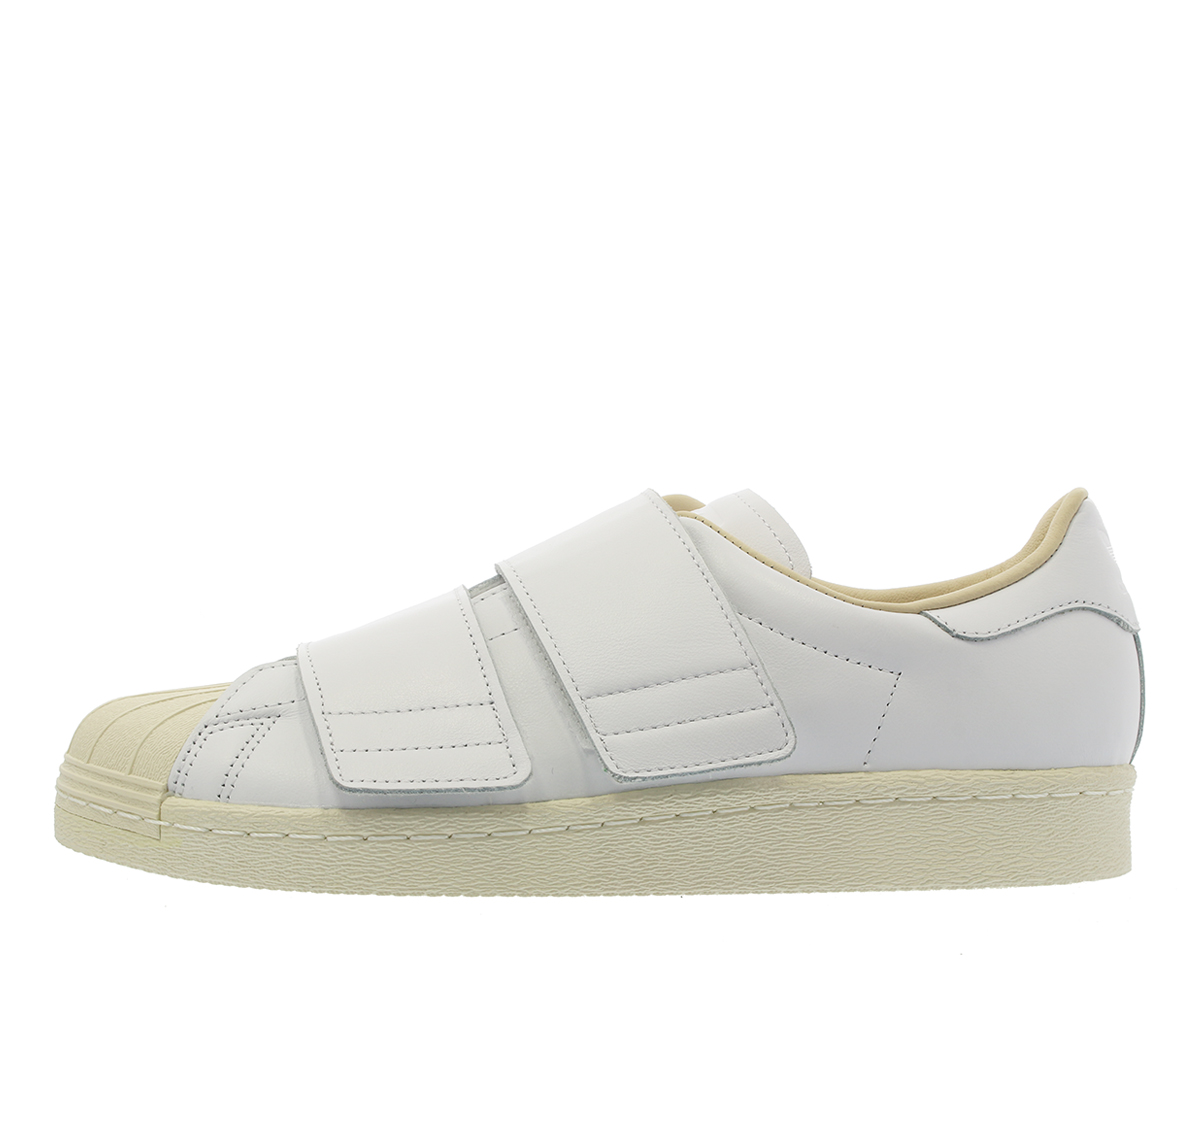 the latest ba2c0 b64ee adidas SUPERSTAR 80s VELCRO W Adidas superstar 80s Velcro W RUNNING  WHITE/RUNNING WHITE/LINEN